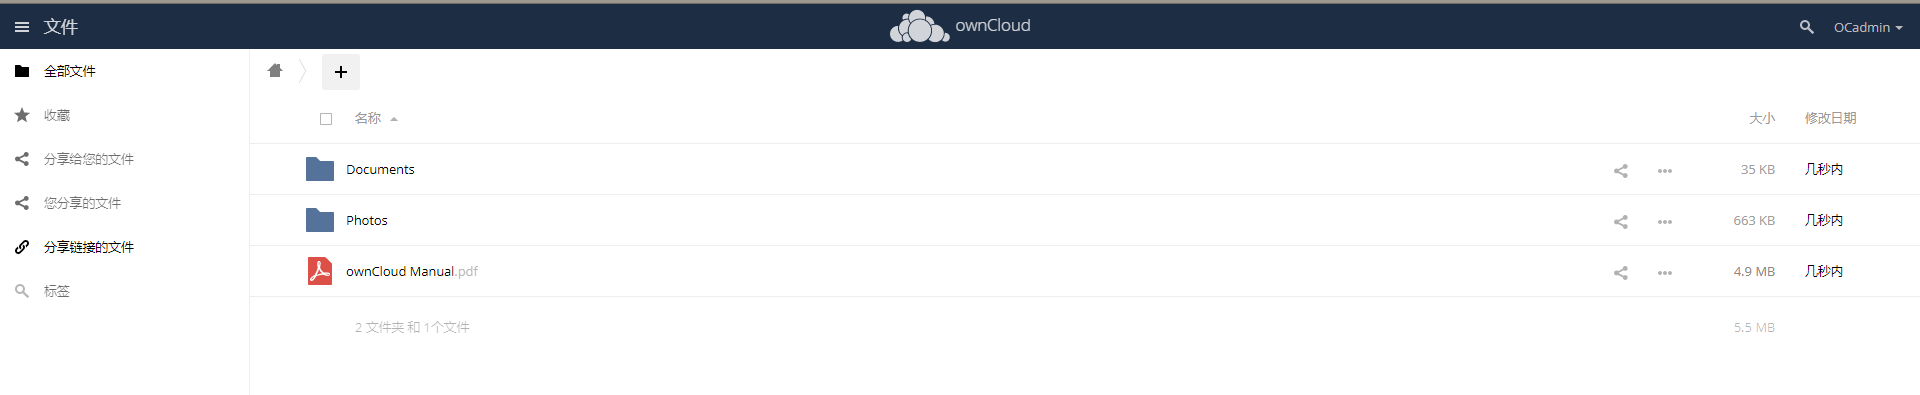 722-4-owncloud-home